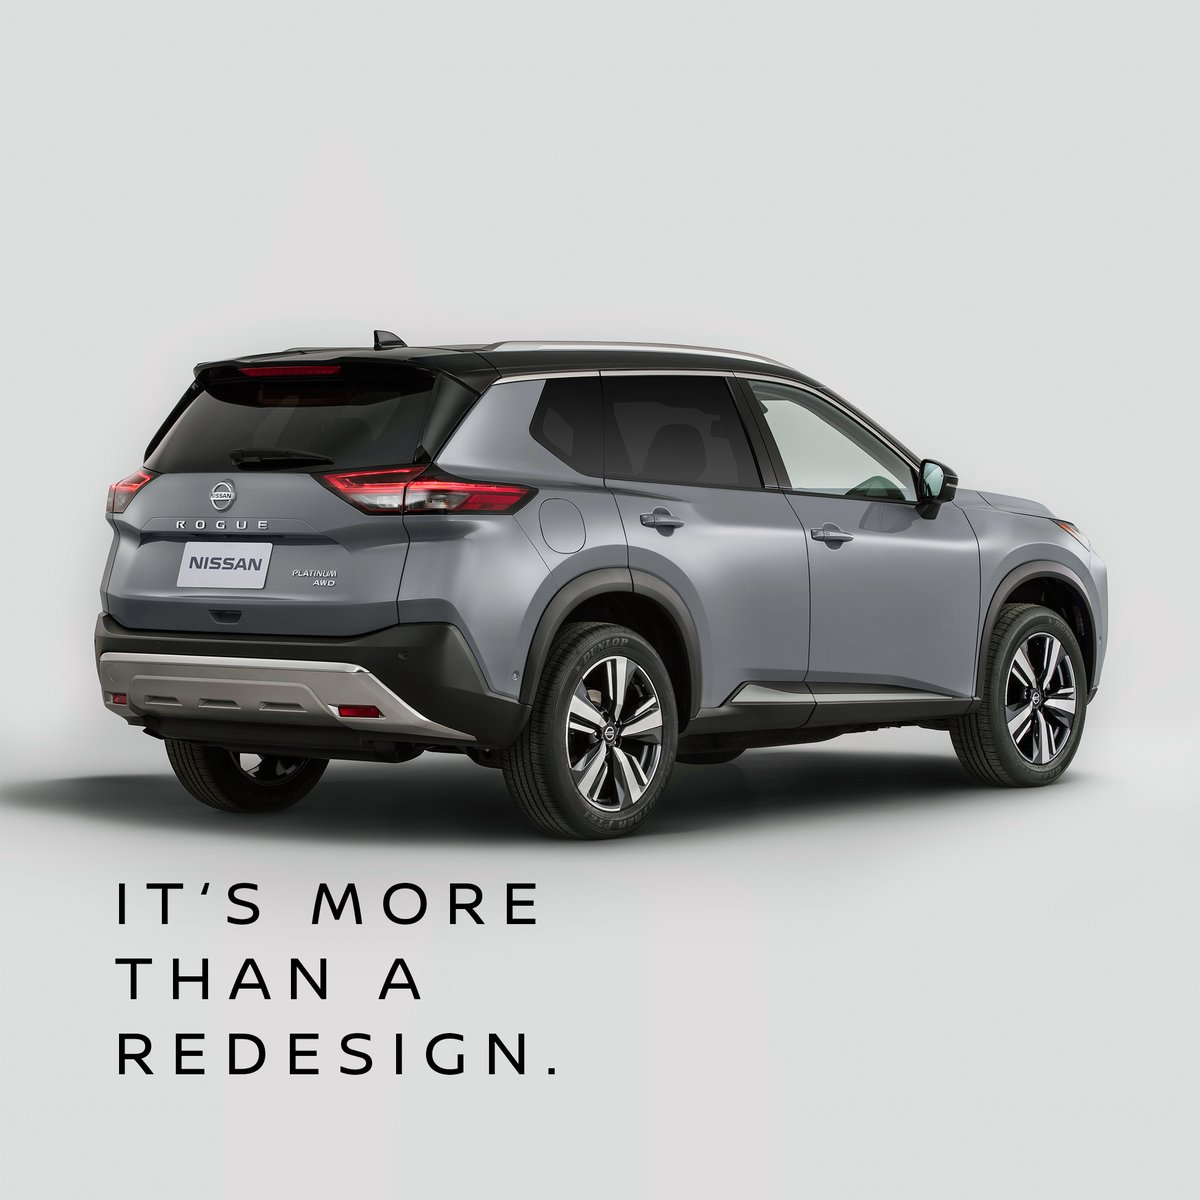 Dressed to thrill. Feast your eyes on the all-new Rogue. With jaw-dropping strength and a breakthrough design, it will make you do a double take. Introducing the all-new 2021 Nissan Rogue. #RogueGoneRogue #NissanRogue2021